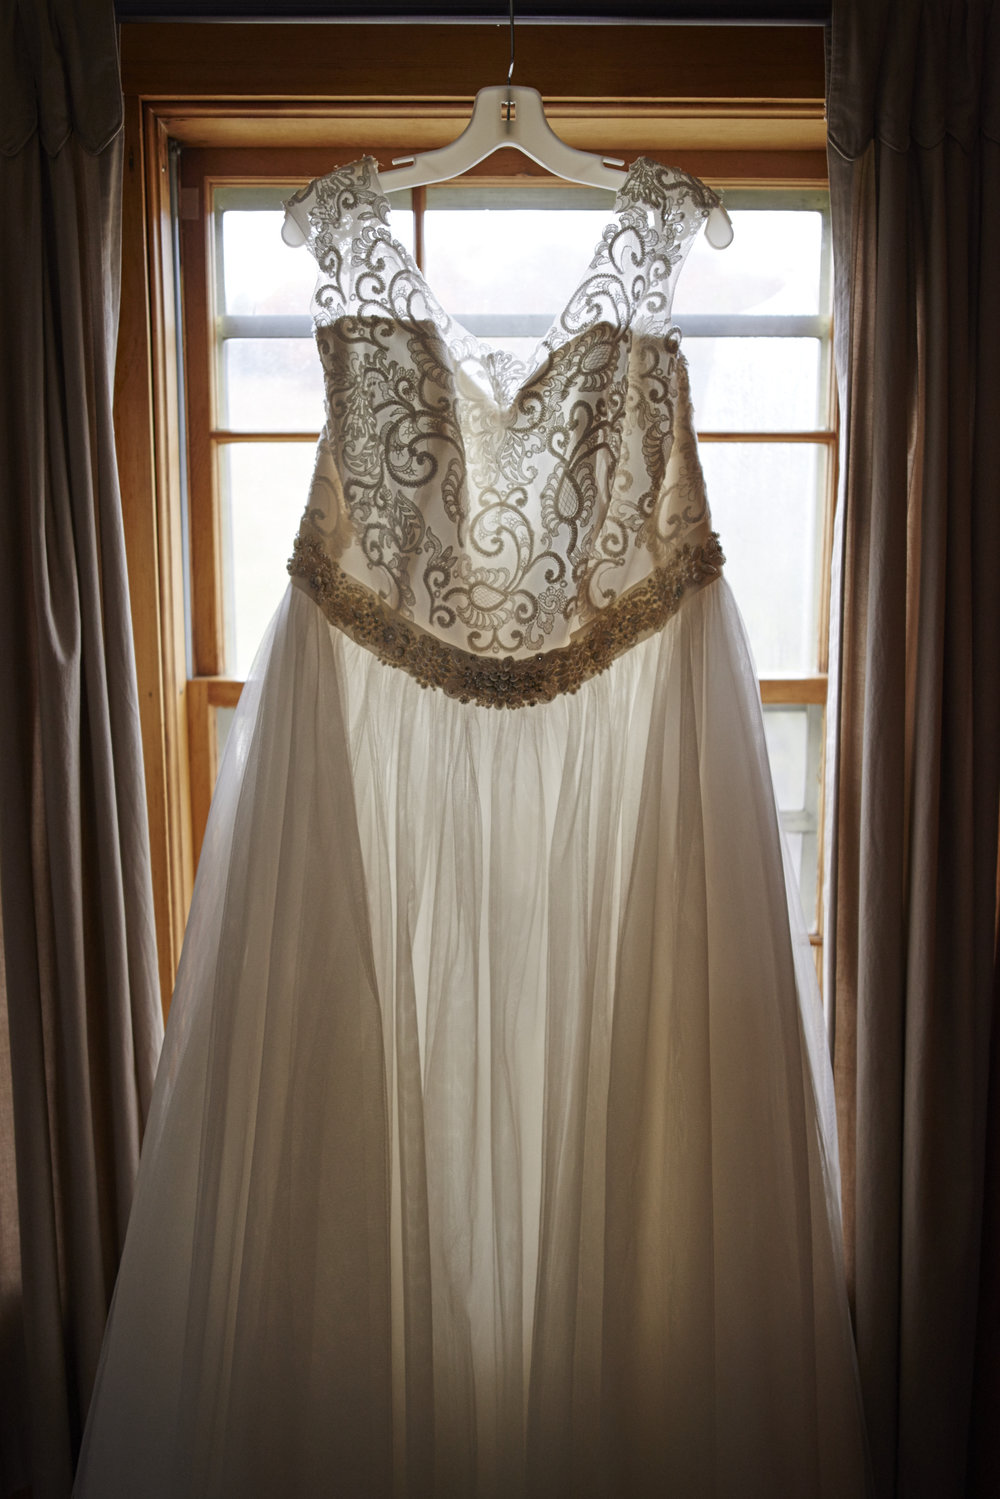 Top New Hampshire Wedding Photographer Wedding Dress